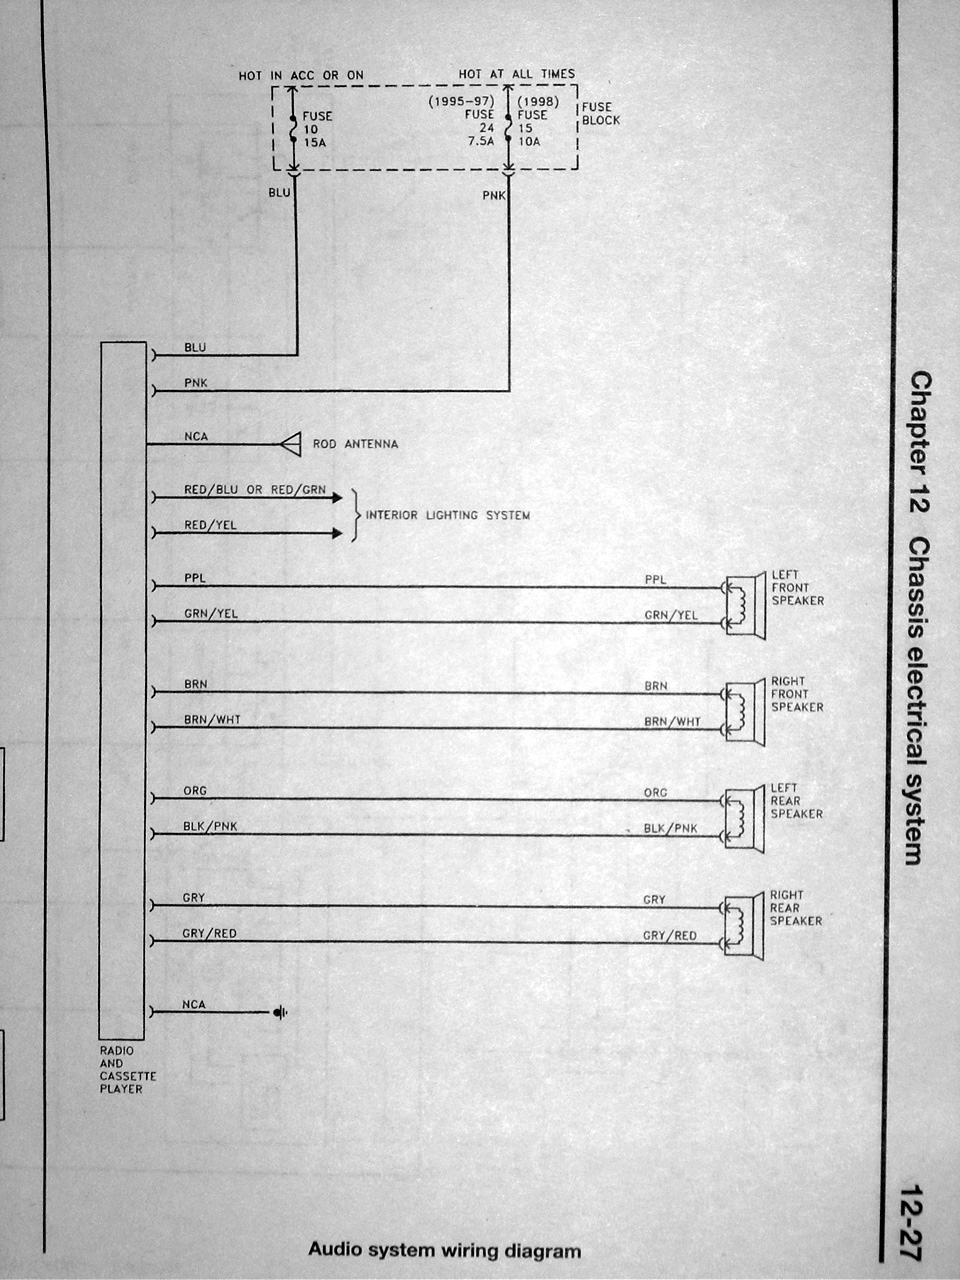 DSC01849 wiring diagram thread *useful info* nissan forum 2003 nissan frontier stereo wiring diagram at edmiracle.co